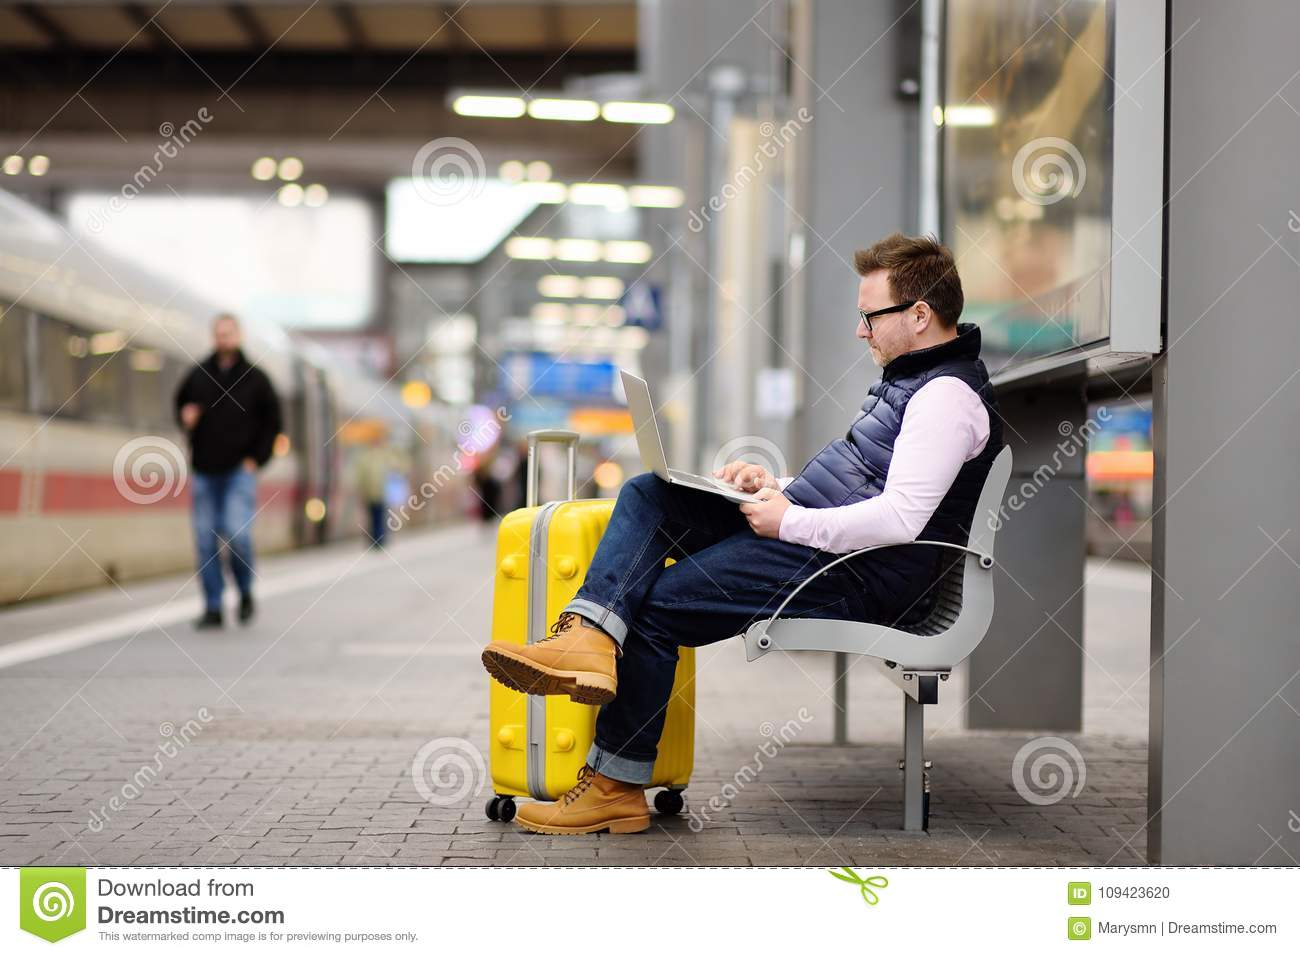 Freelancer working with a laptop in a train station while is waiting for transport